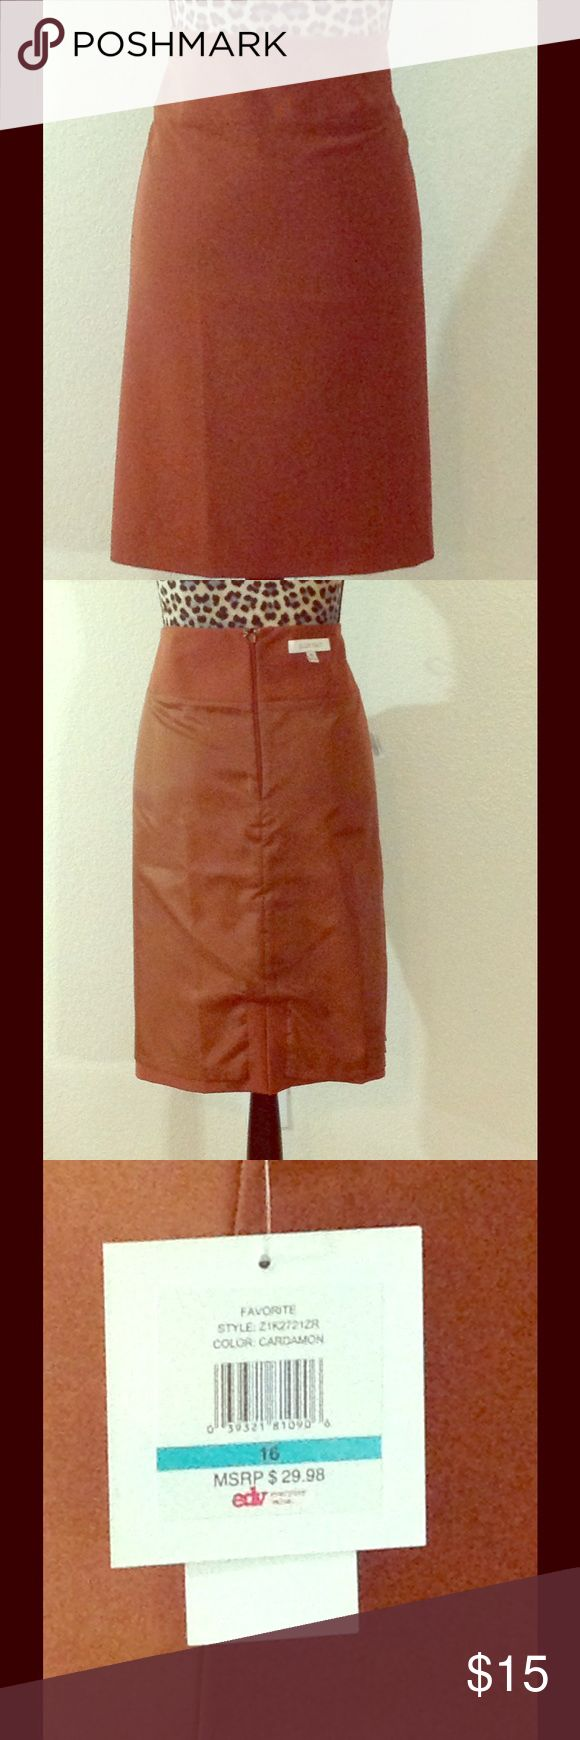 Pencil Skirt Brown Pencil Skirt with Back split, lined, and High Waist Band. Ellen Tracy Ellen Tracy Skirts Pencil